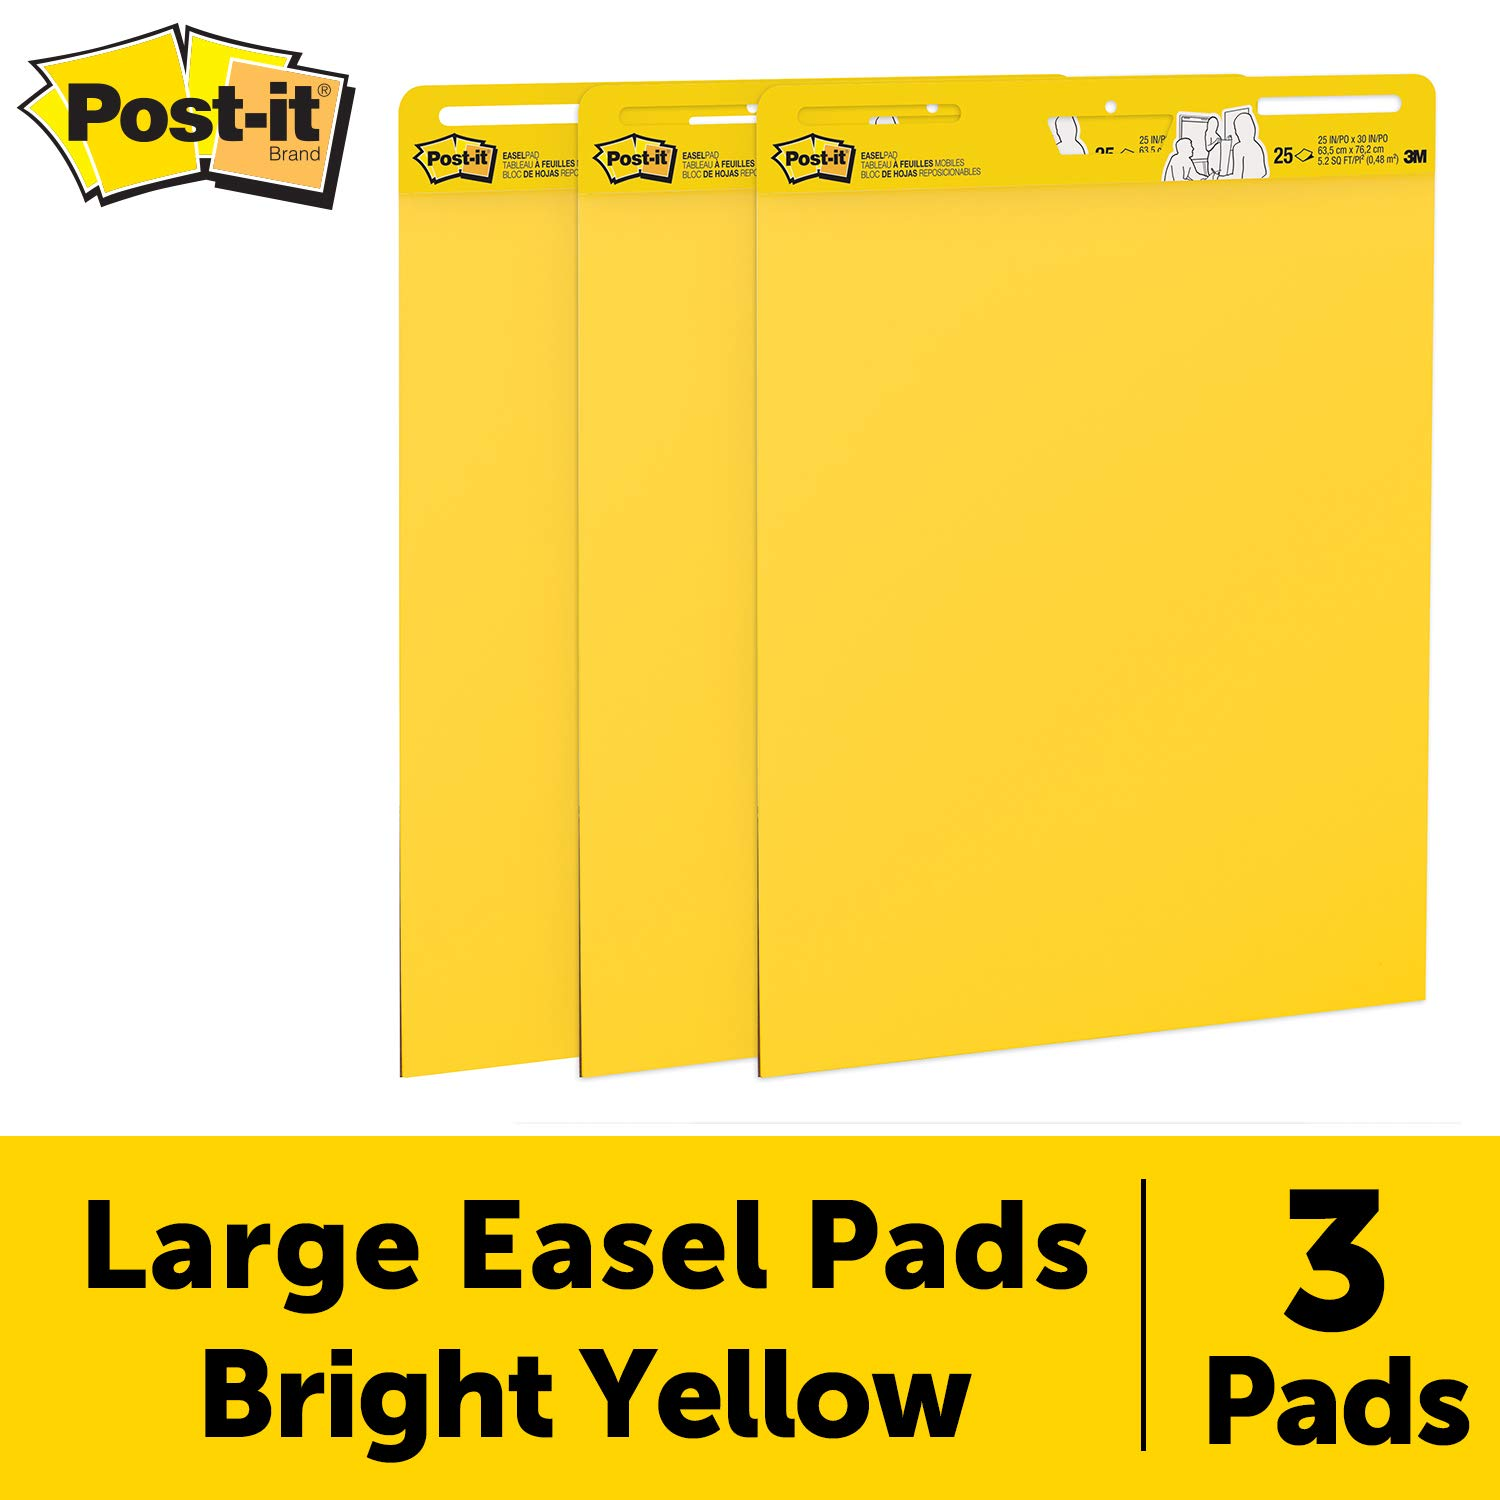 Post-it Super Sticky Easel Pad, 25 x 30 Inches, 25 Sheets/Pad, 3 Pads (559YW-3PK), Large Bright Yellow Premium Self Stick Flip Chart Paper, Super Sticking Power by Post-it